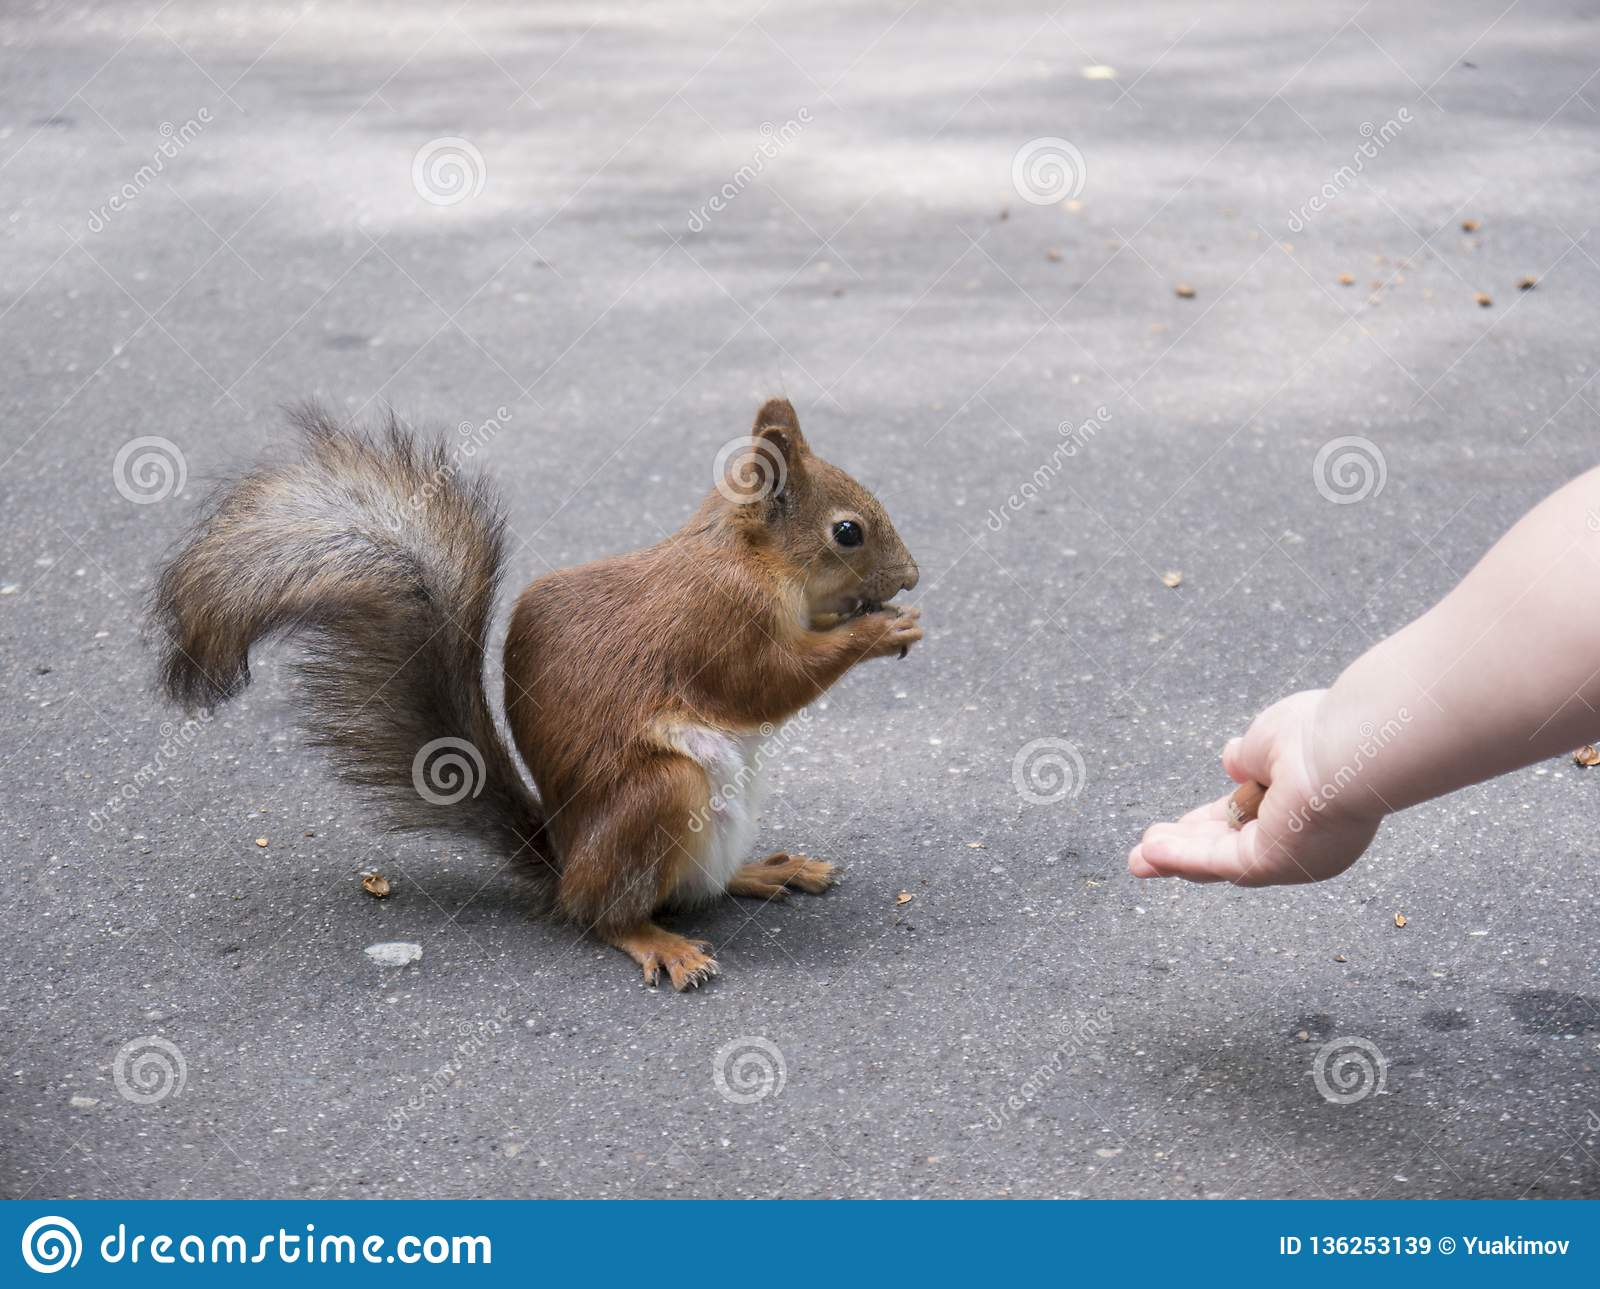 Young baby girl hand with open palm feeding squirrel side view